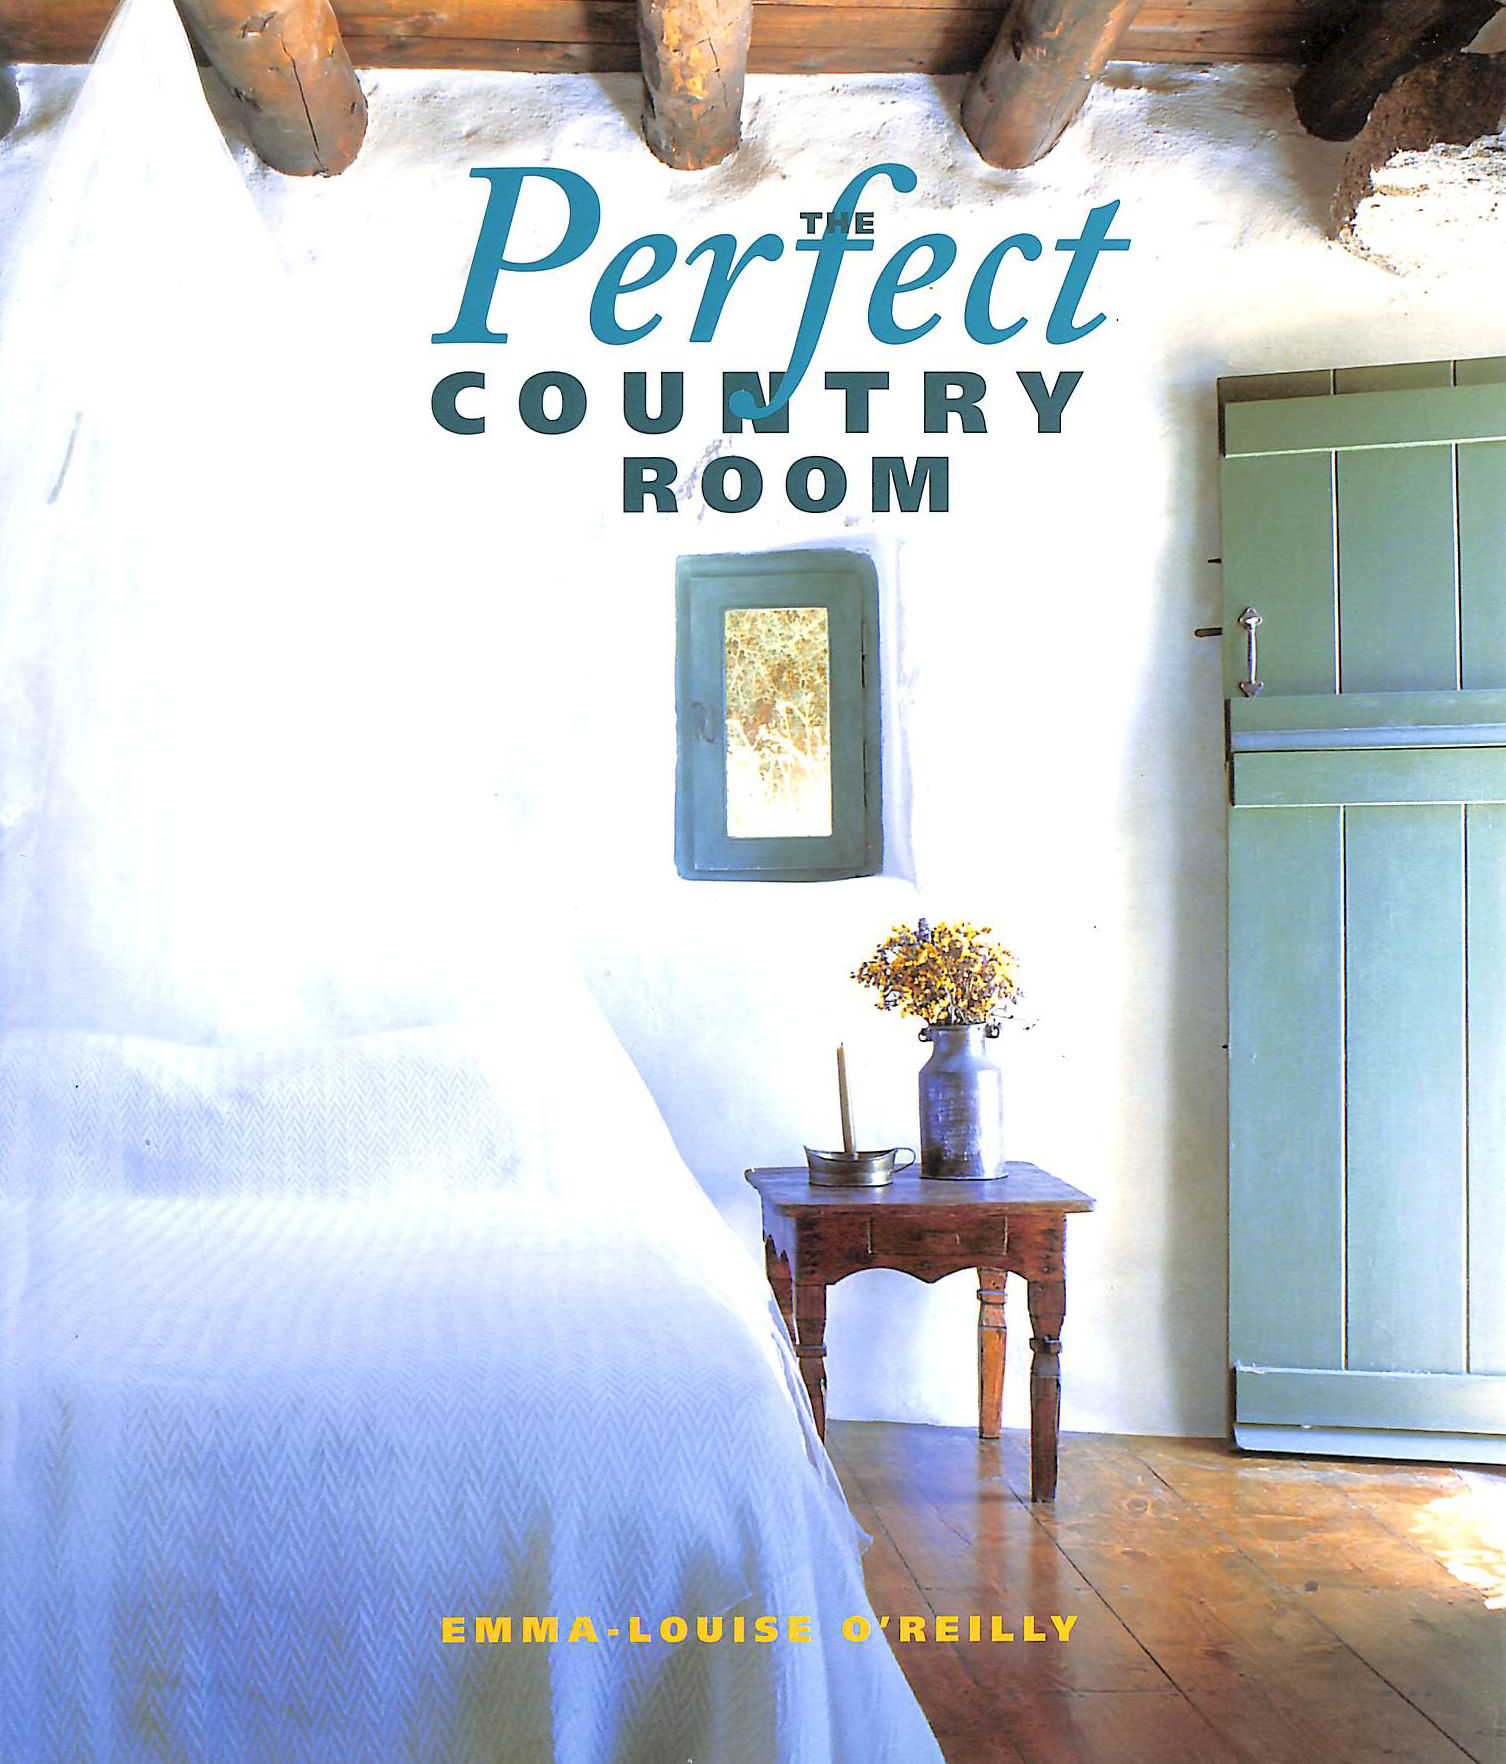 Image for The Perfect Country Room